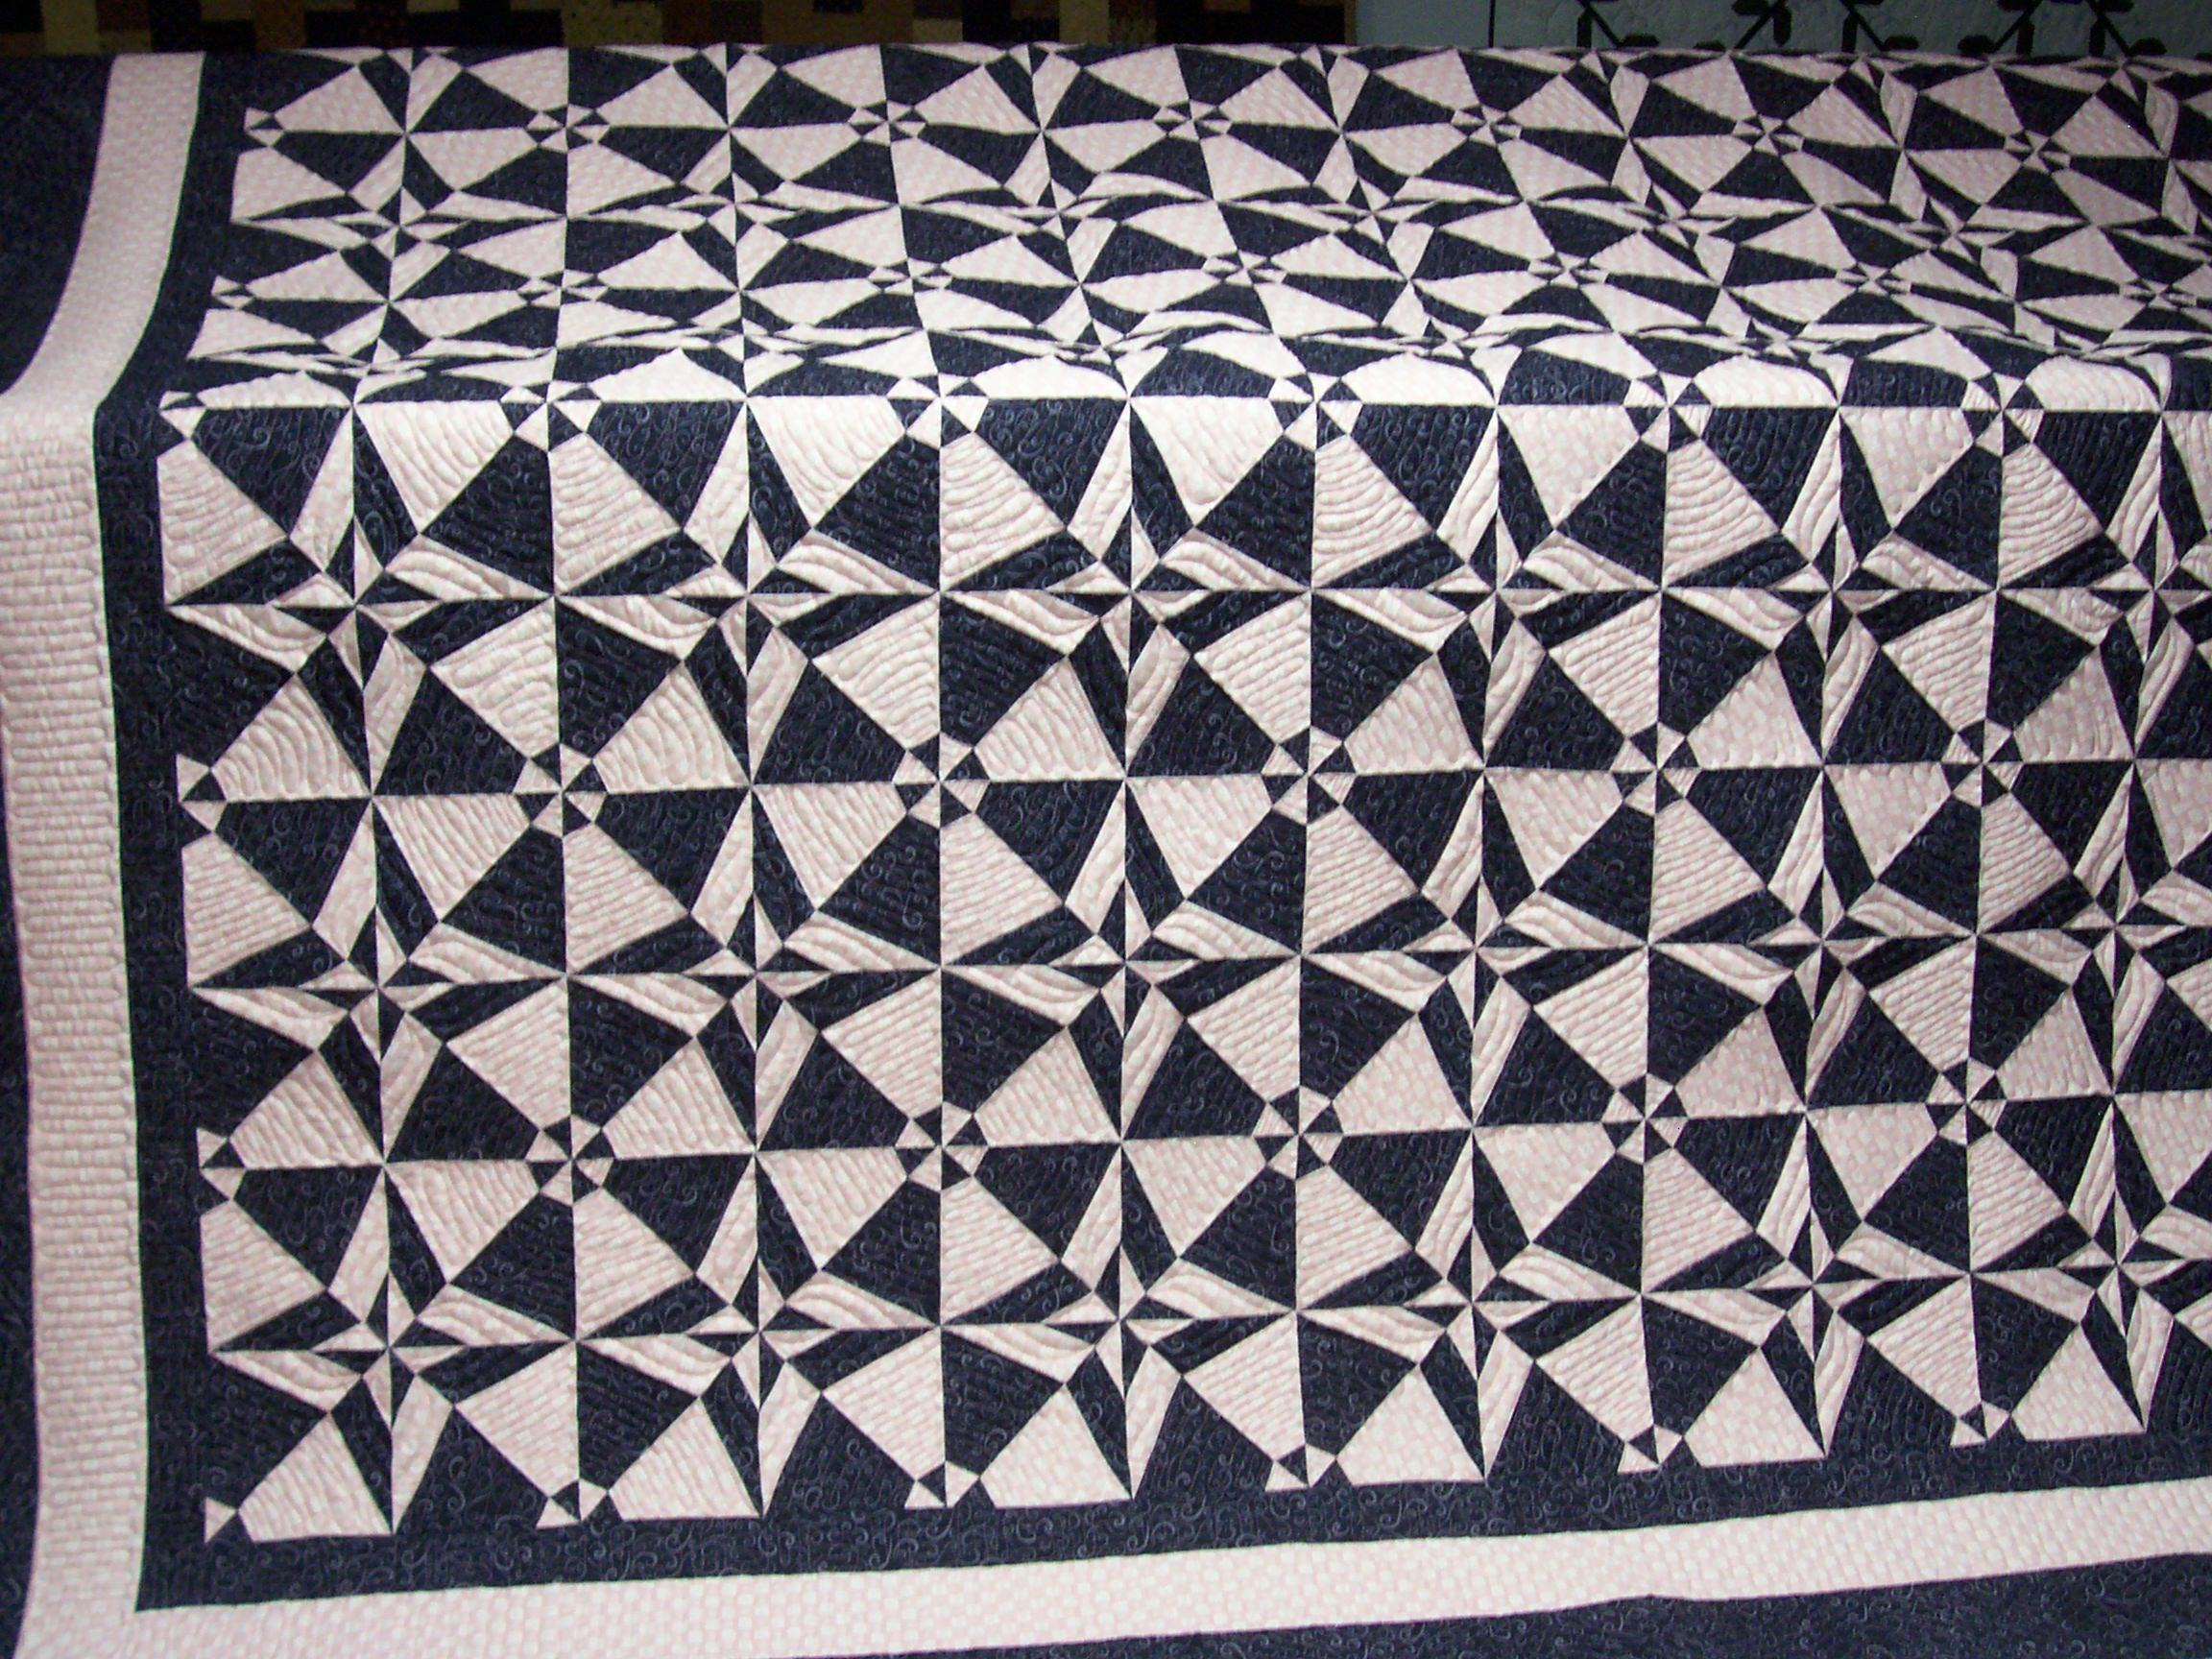 Blk/whi with pink quilting Night & Day | Quilts | Pinterest | Pink ...